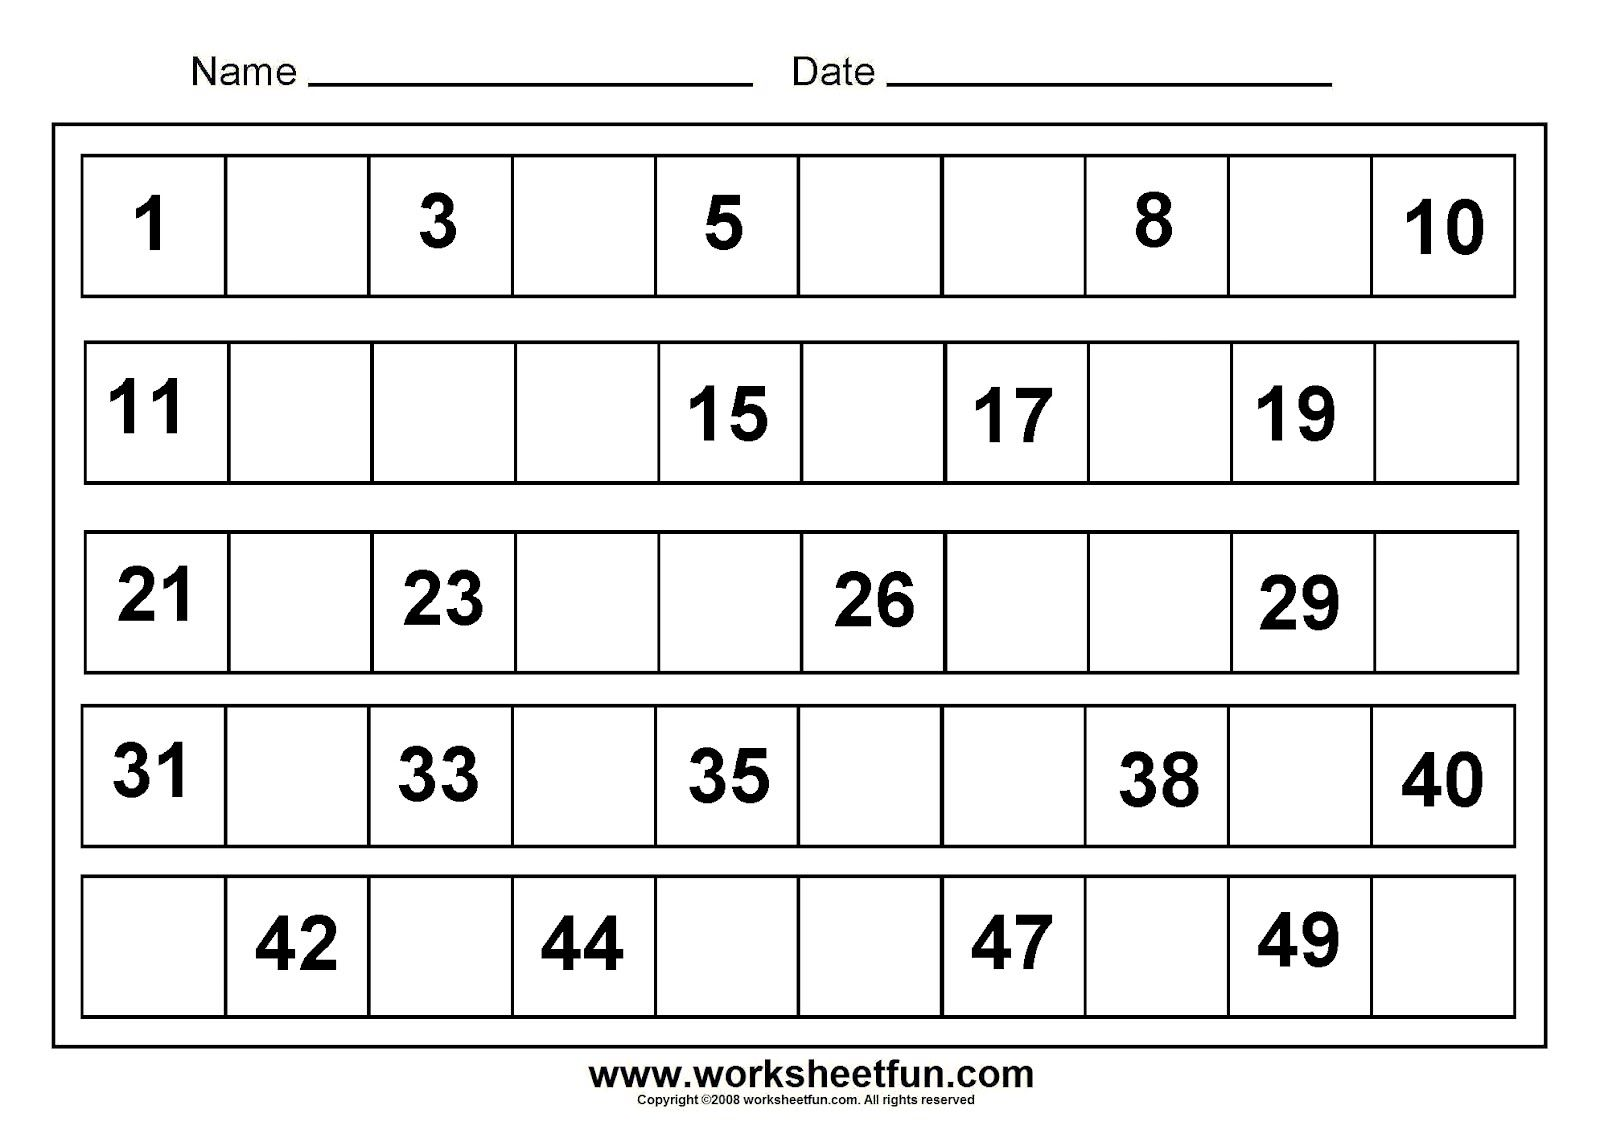 Worksheet Math Worksheets For Kinder free math worksheets kindergarten pichaglobal 1000 images about work sheets on pinterest count kindergarten